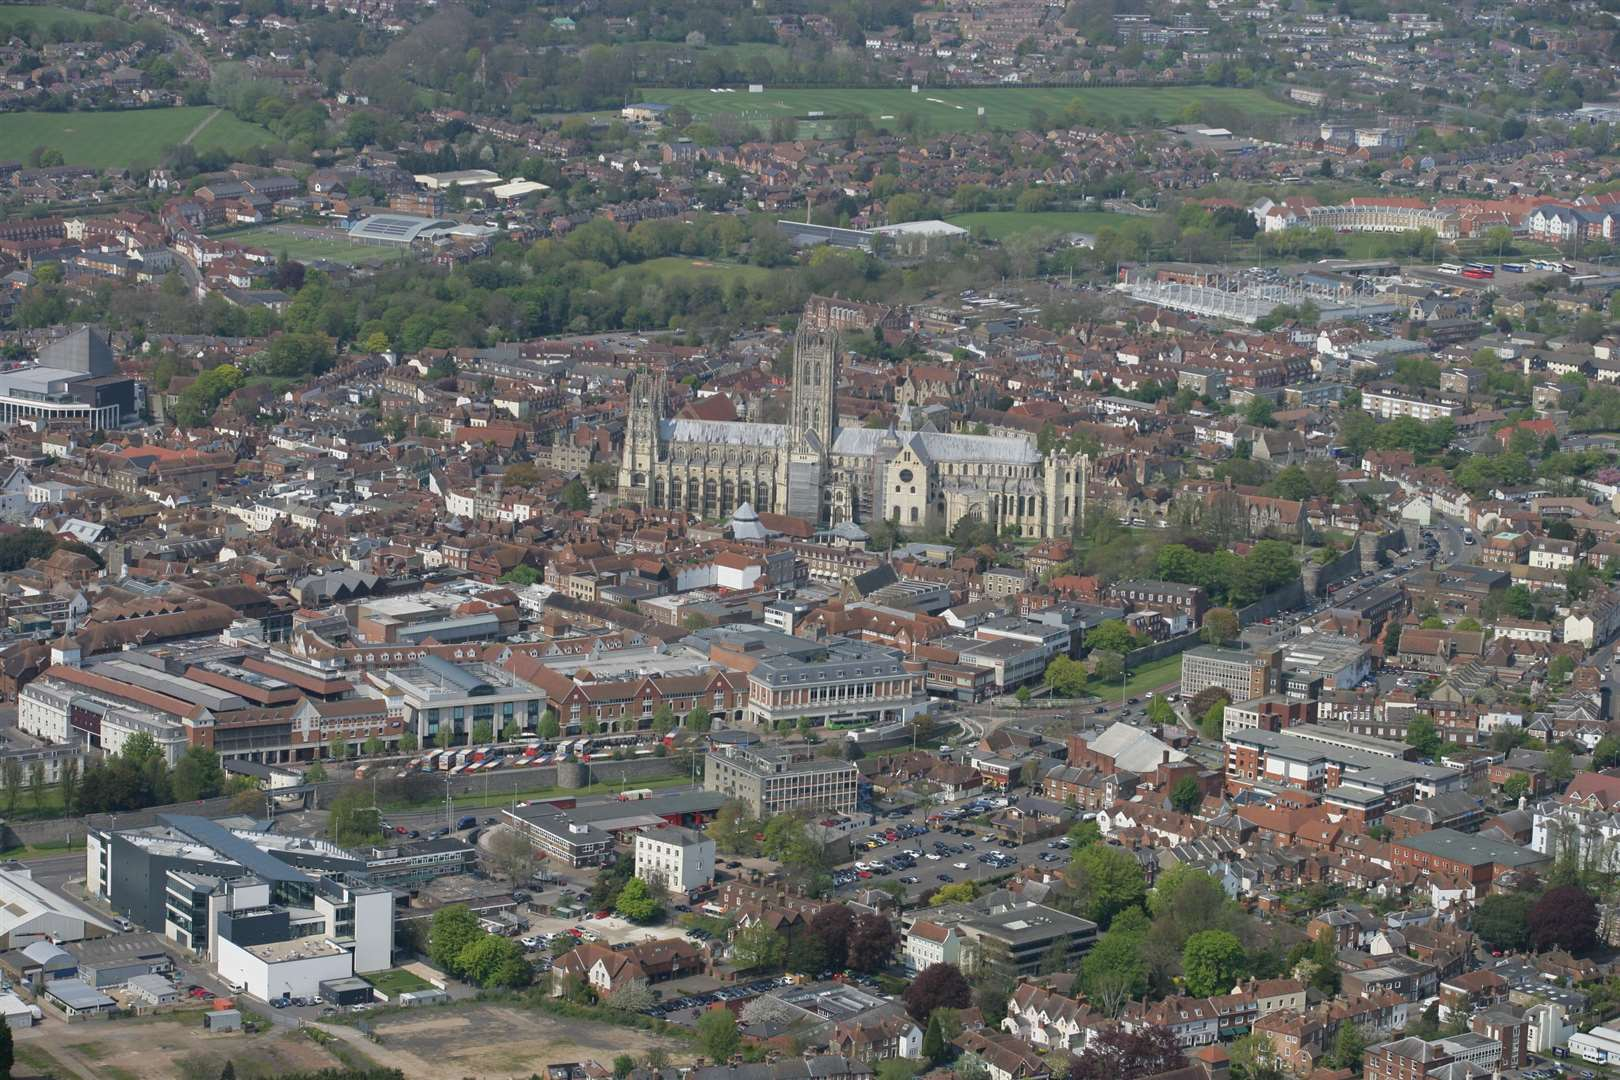 Canterbury has seen the biggest increase in property values in Kent. Picture: Martin Apps